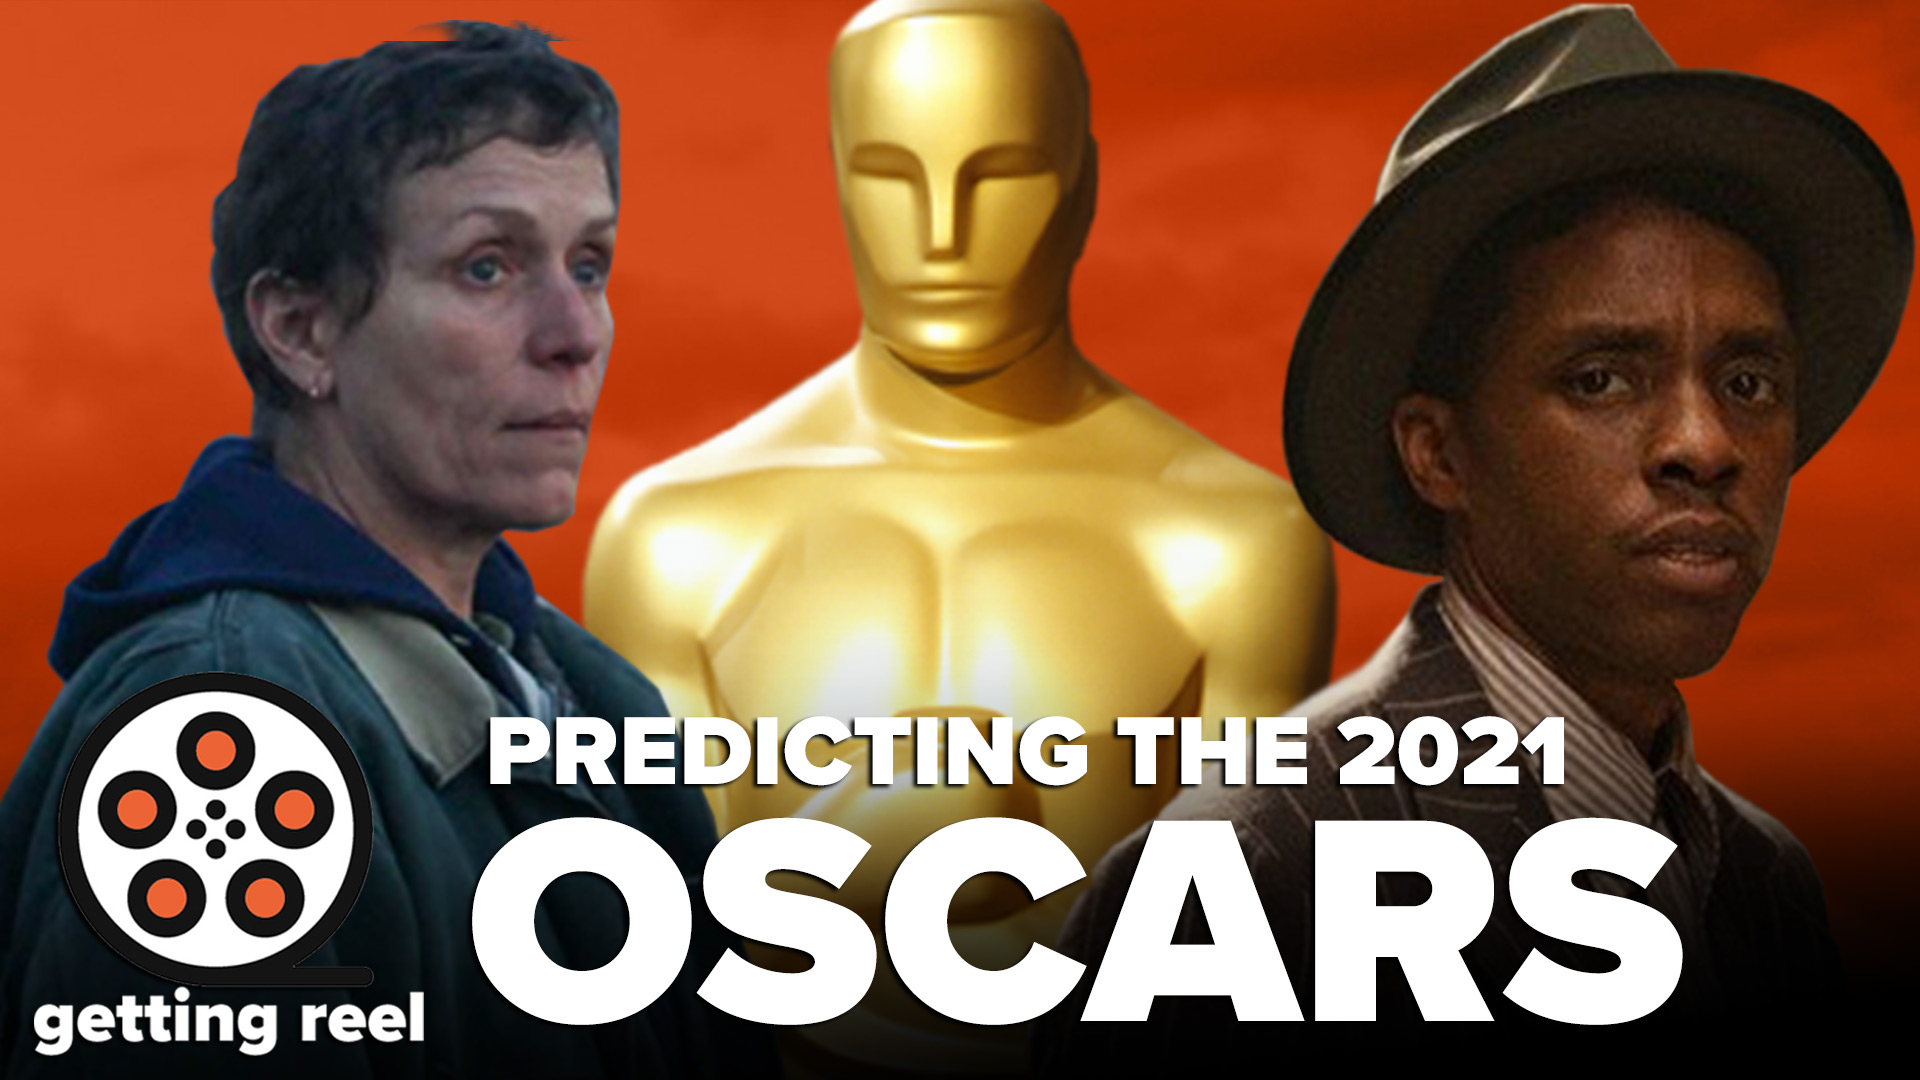 Our very stupid predictions for the 2021 Oscars